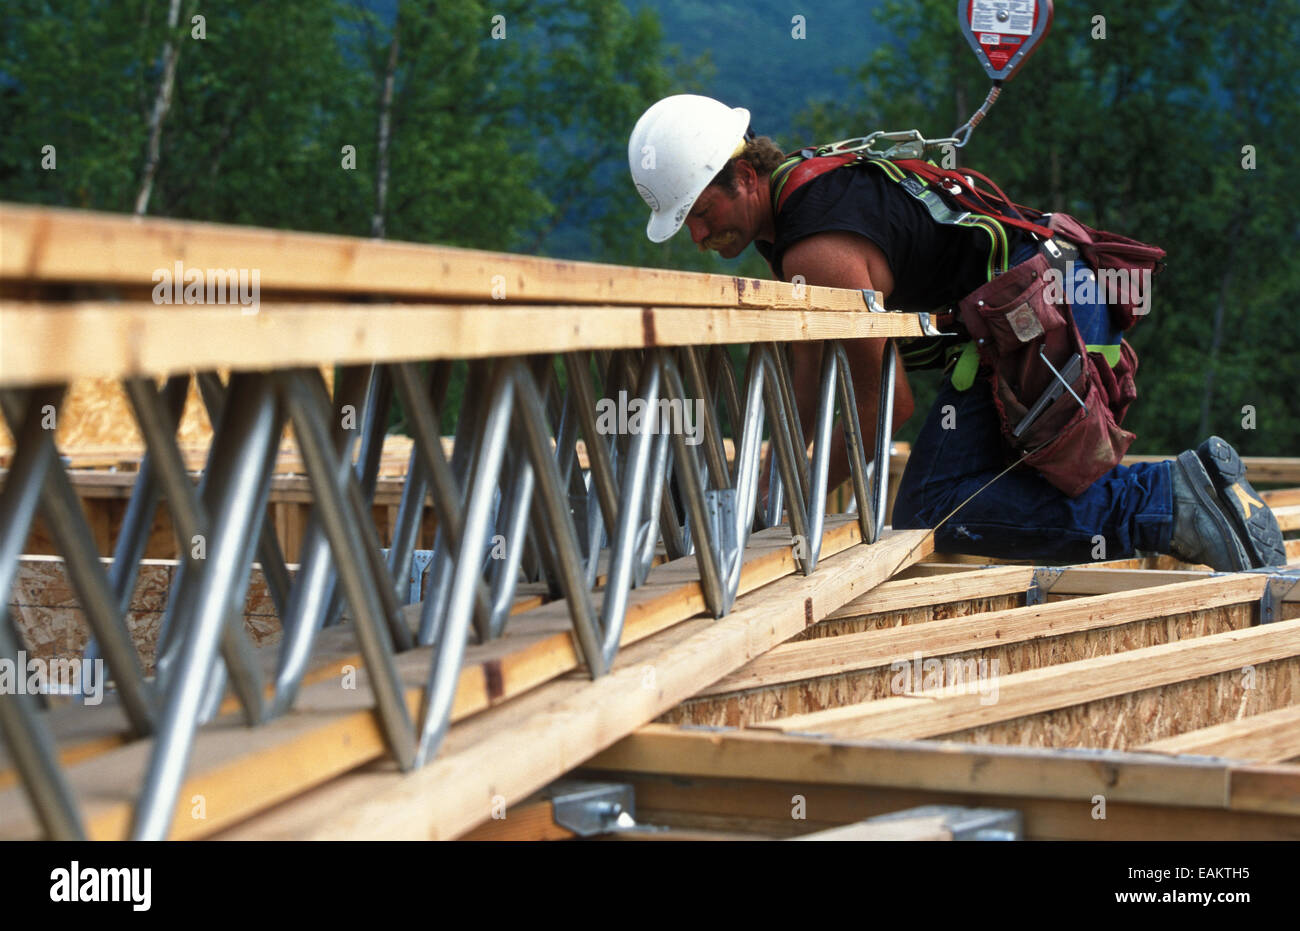 Construction Worker Wearing Safety Harness Working On Roof Tresses  Anchorage Alaska Summer